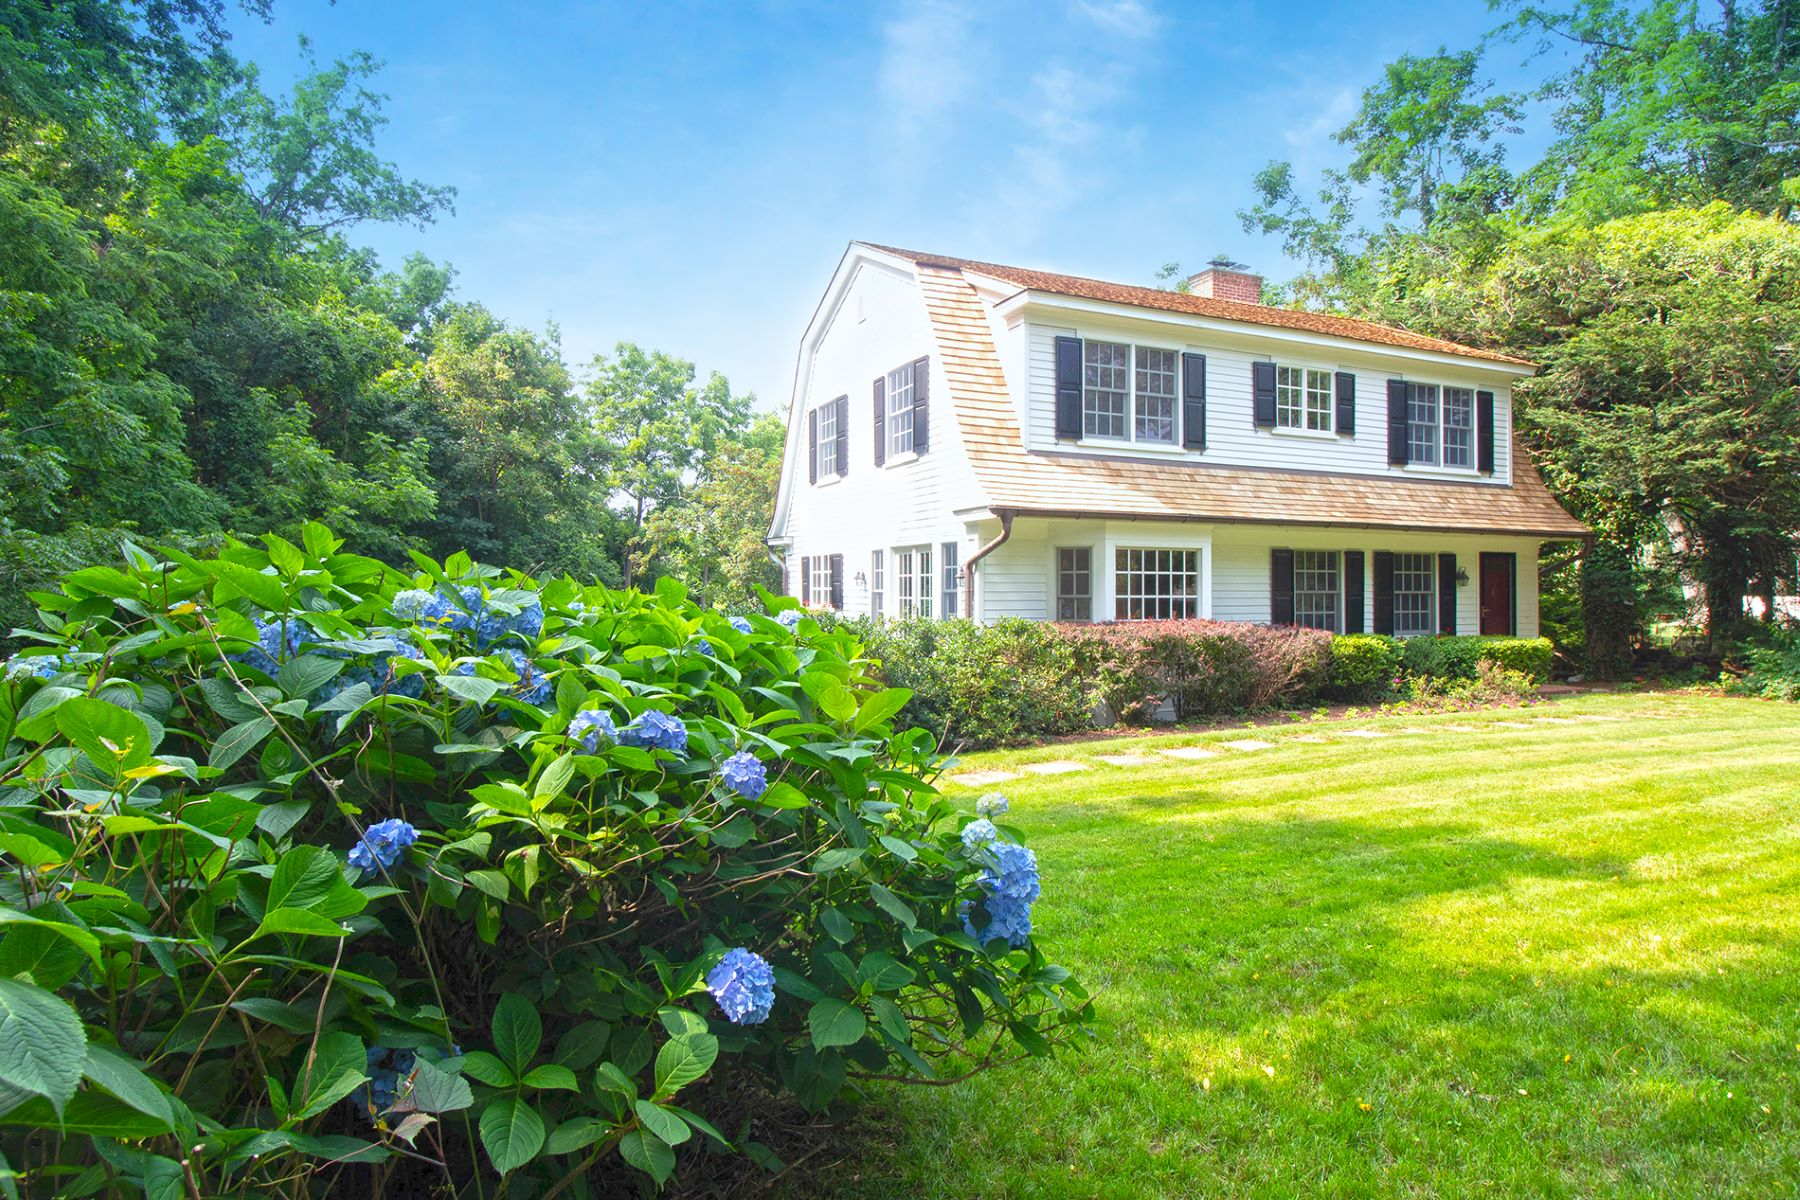 Single Family Homes for Active at Setauket 152 Old Field Rd Setauket, New York 11733 United States